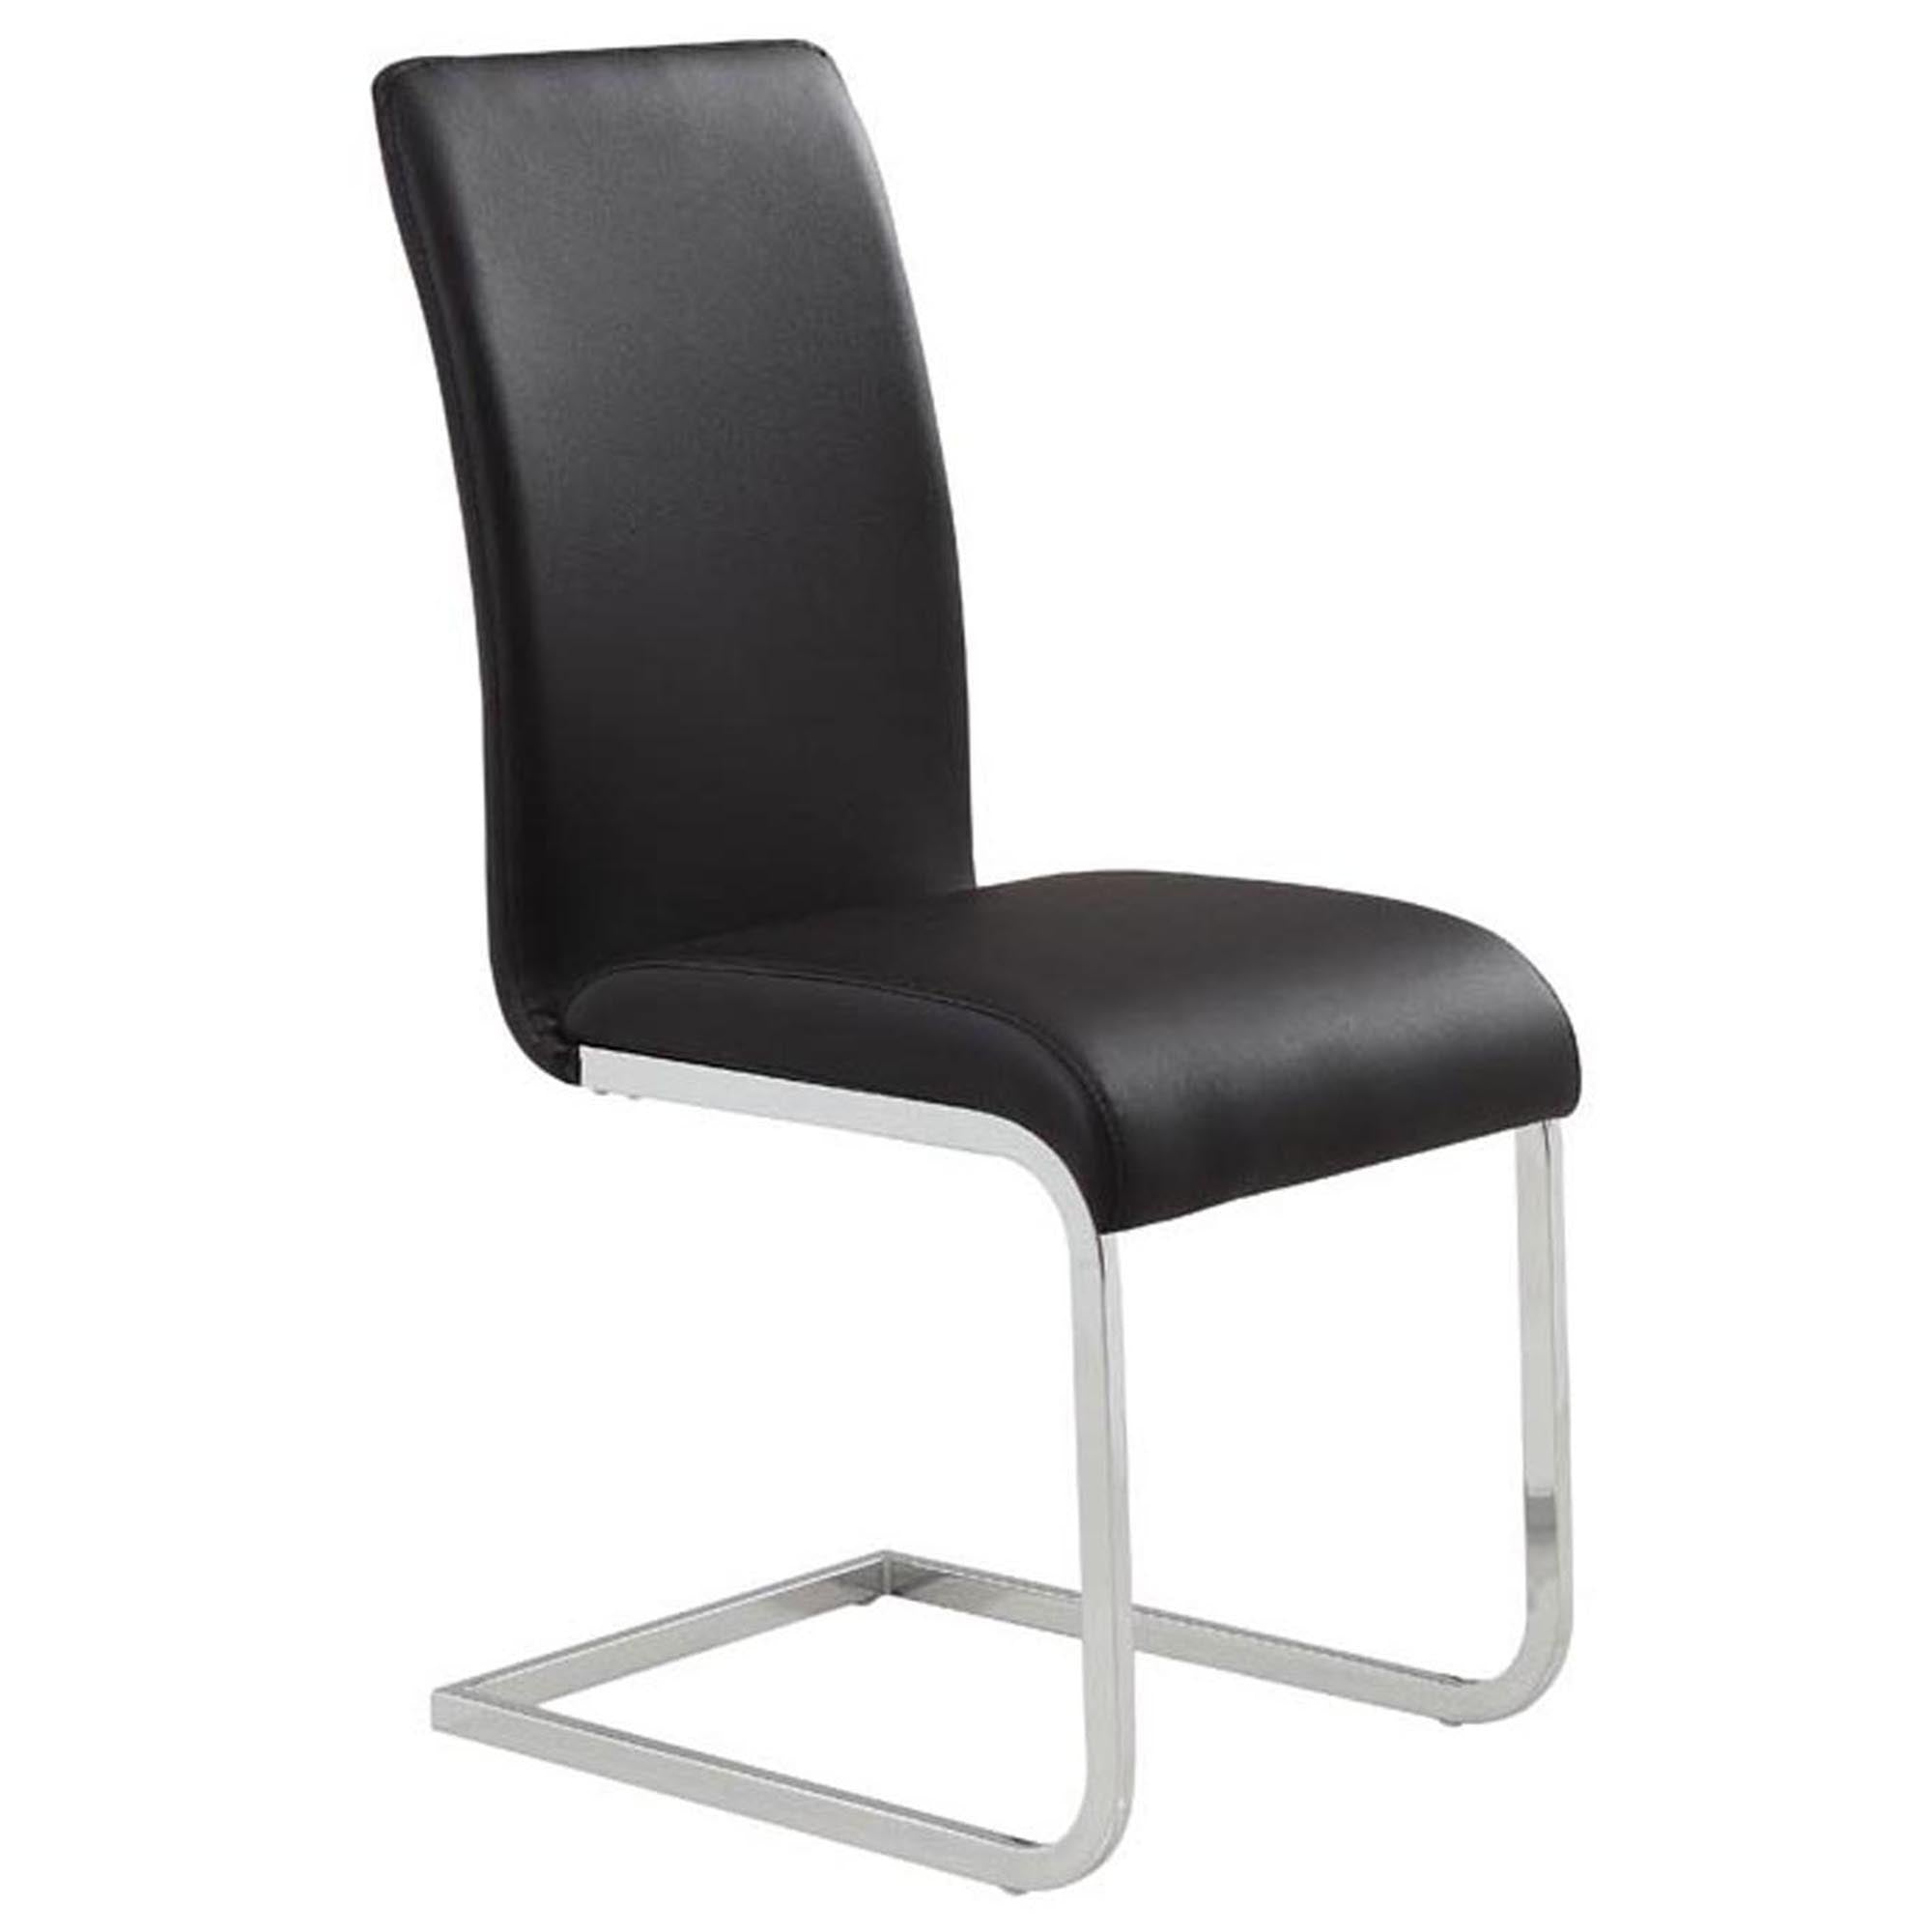 Maxim Dining Chairs - Black